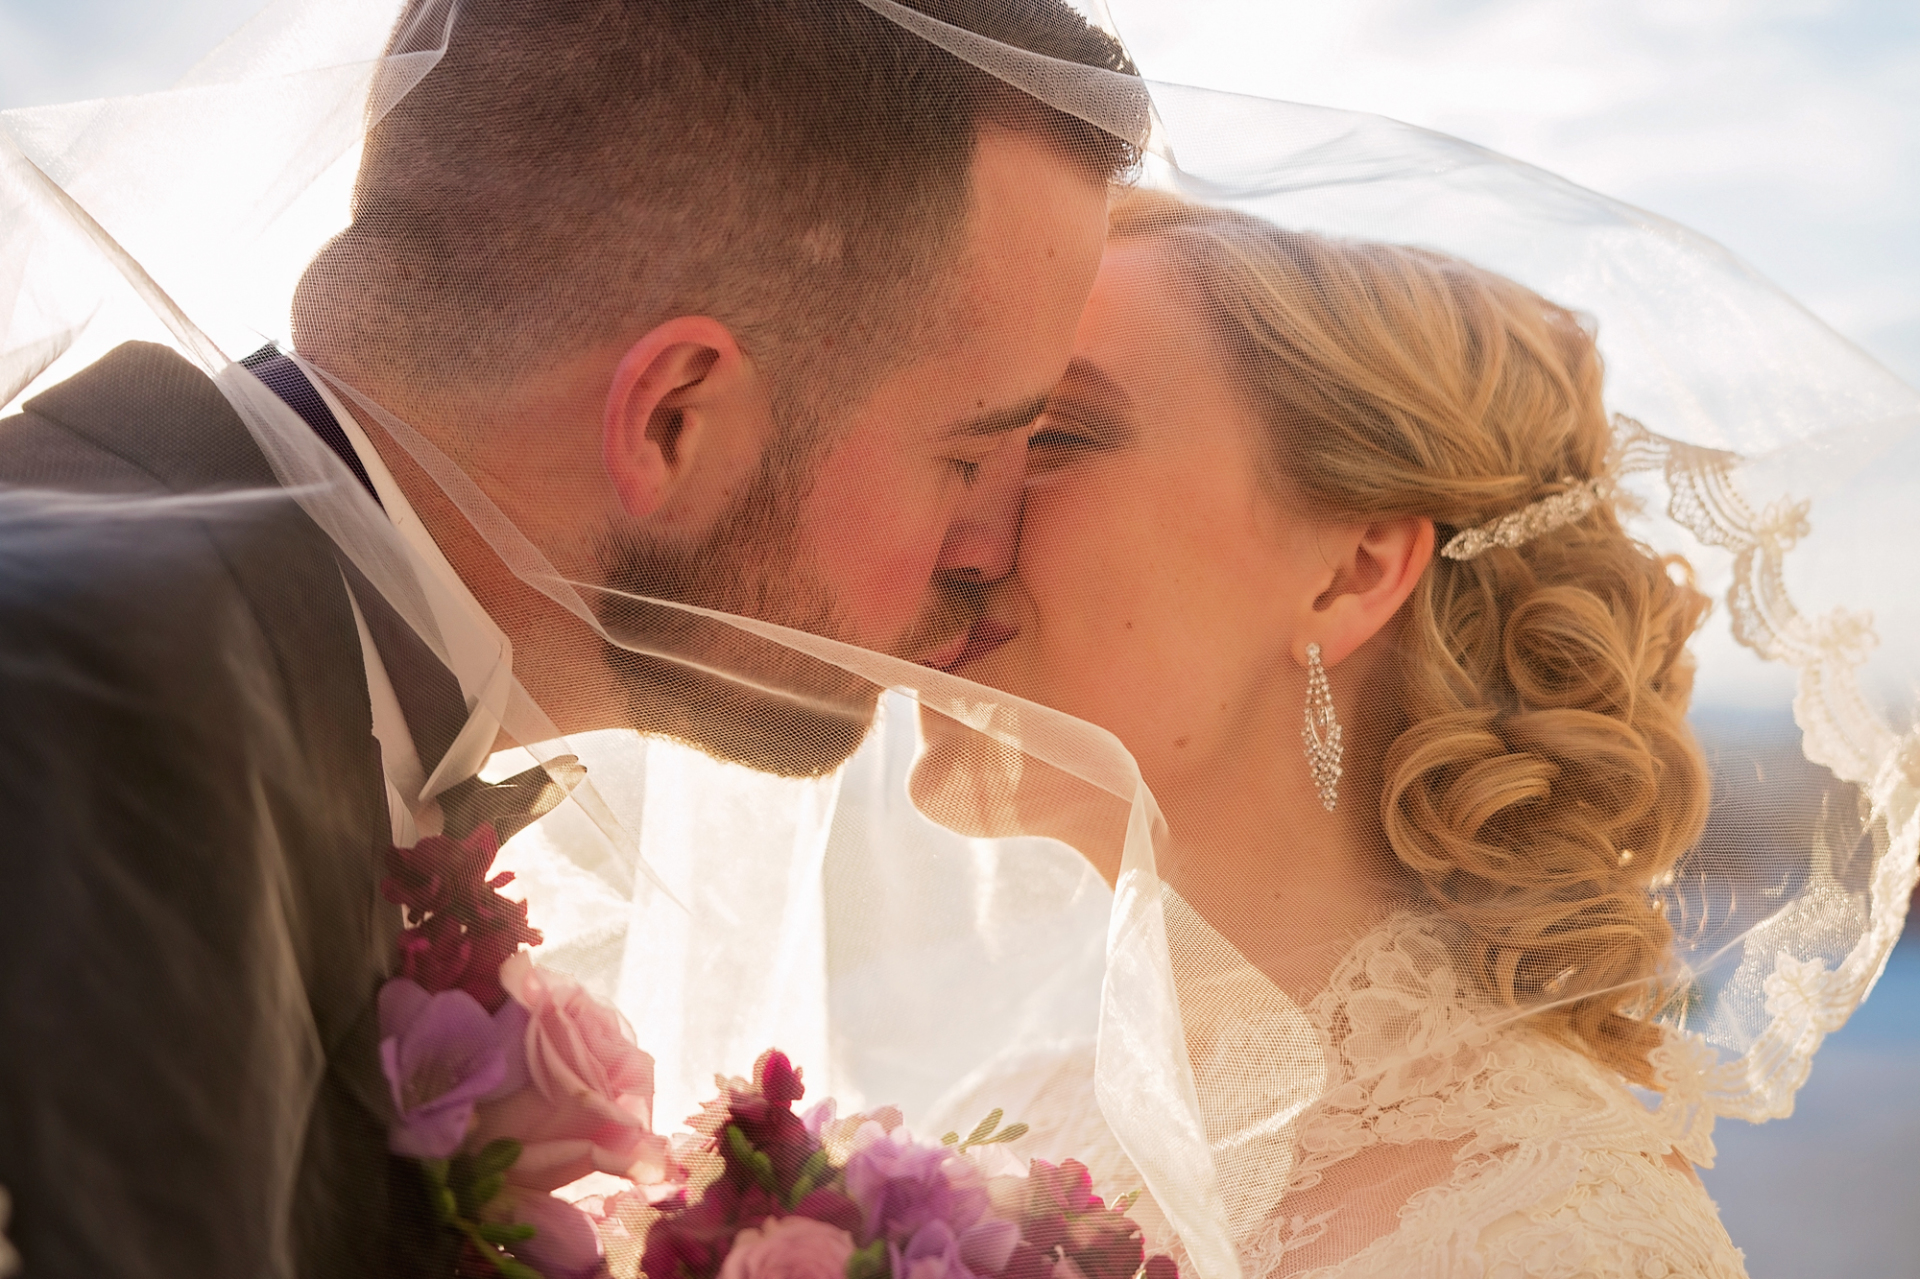 A bride and groom kiss romantically underneath the bride's veil at the Utah State Capitol.